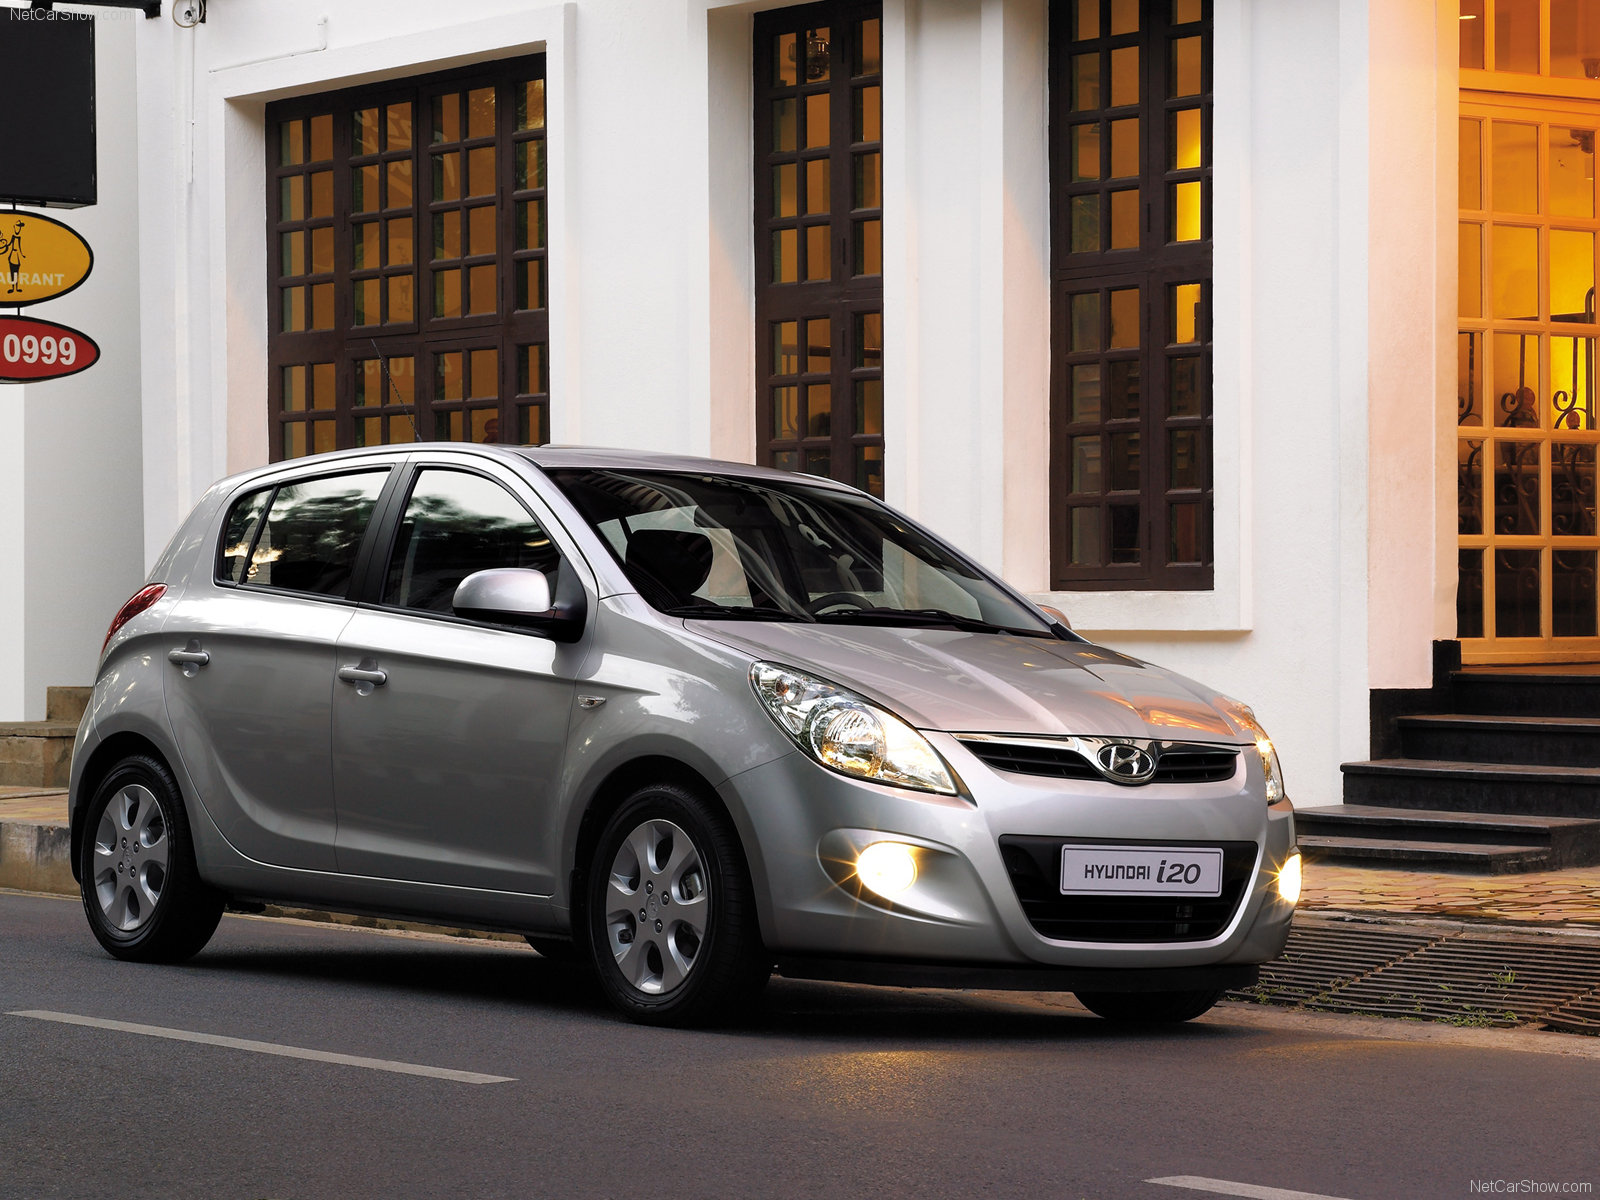 Hyundai i20 photo 58603